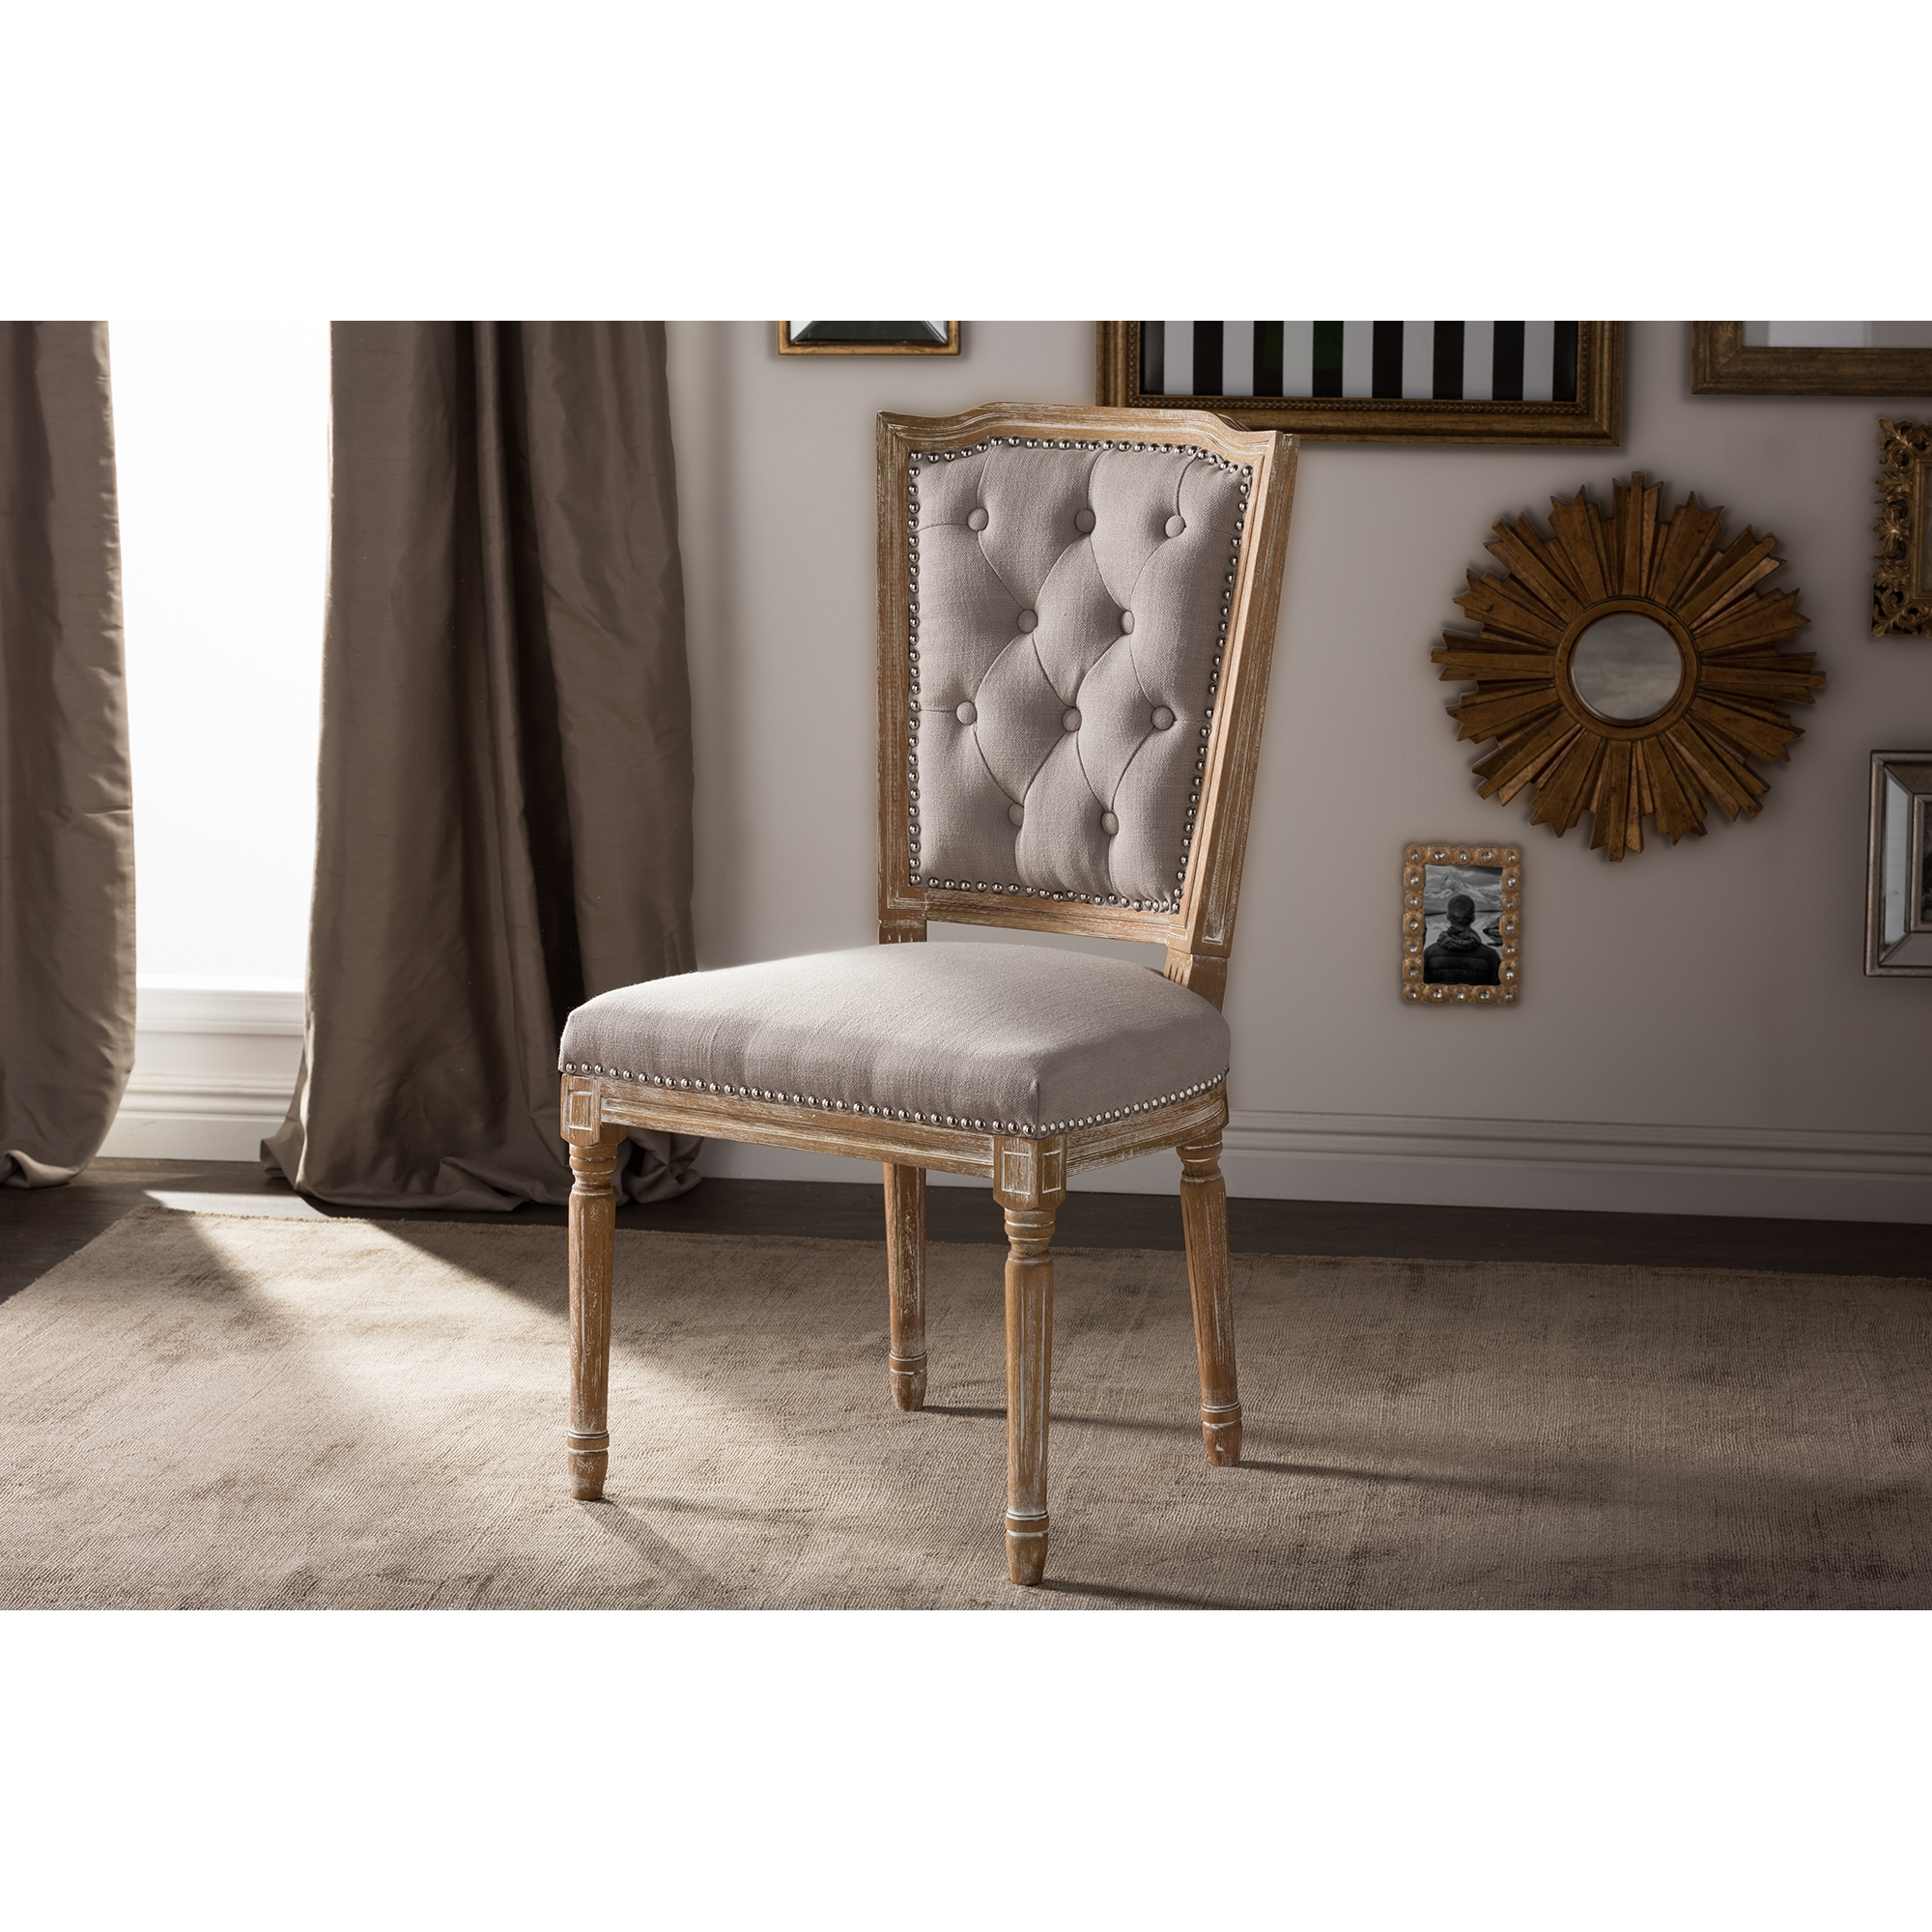 Modren Rustic Upholstered Dining Chairs Incredible Furniture